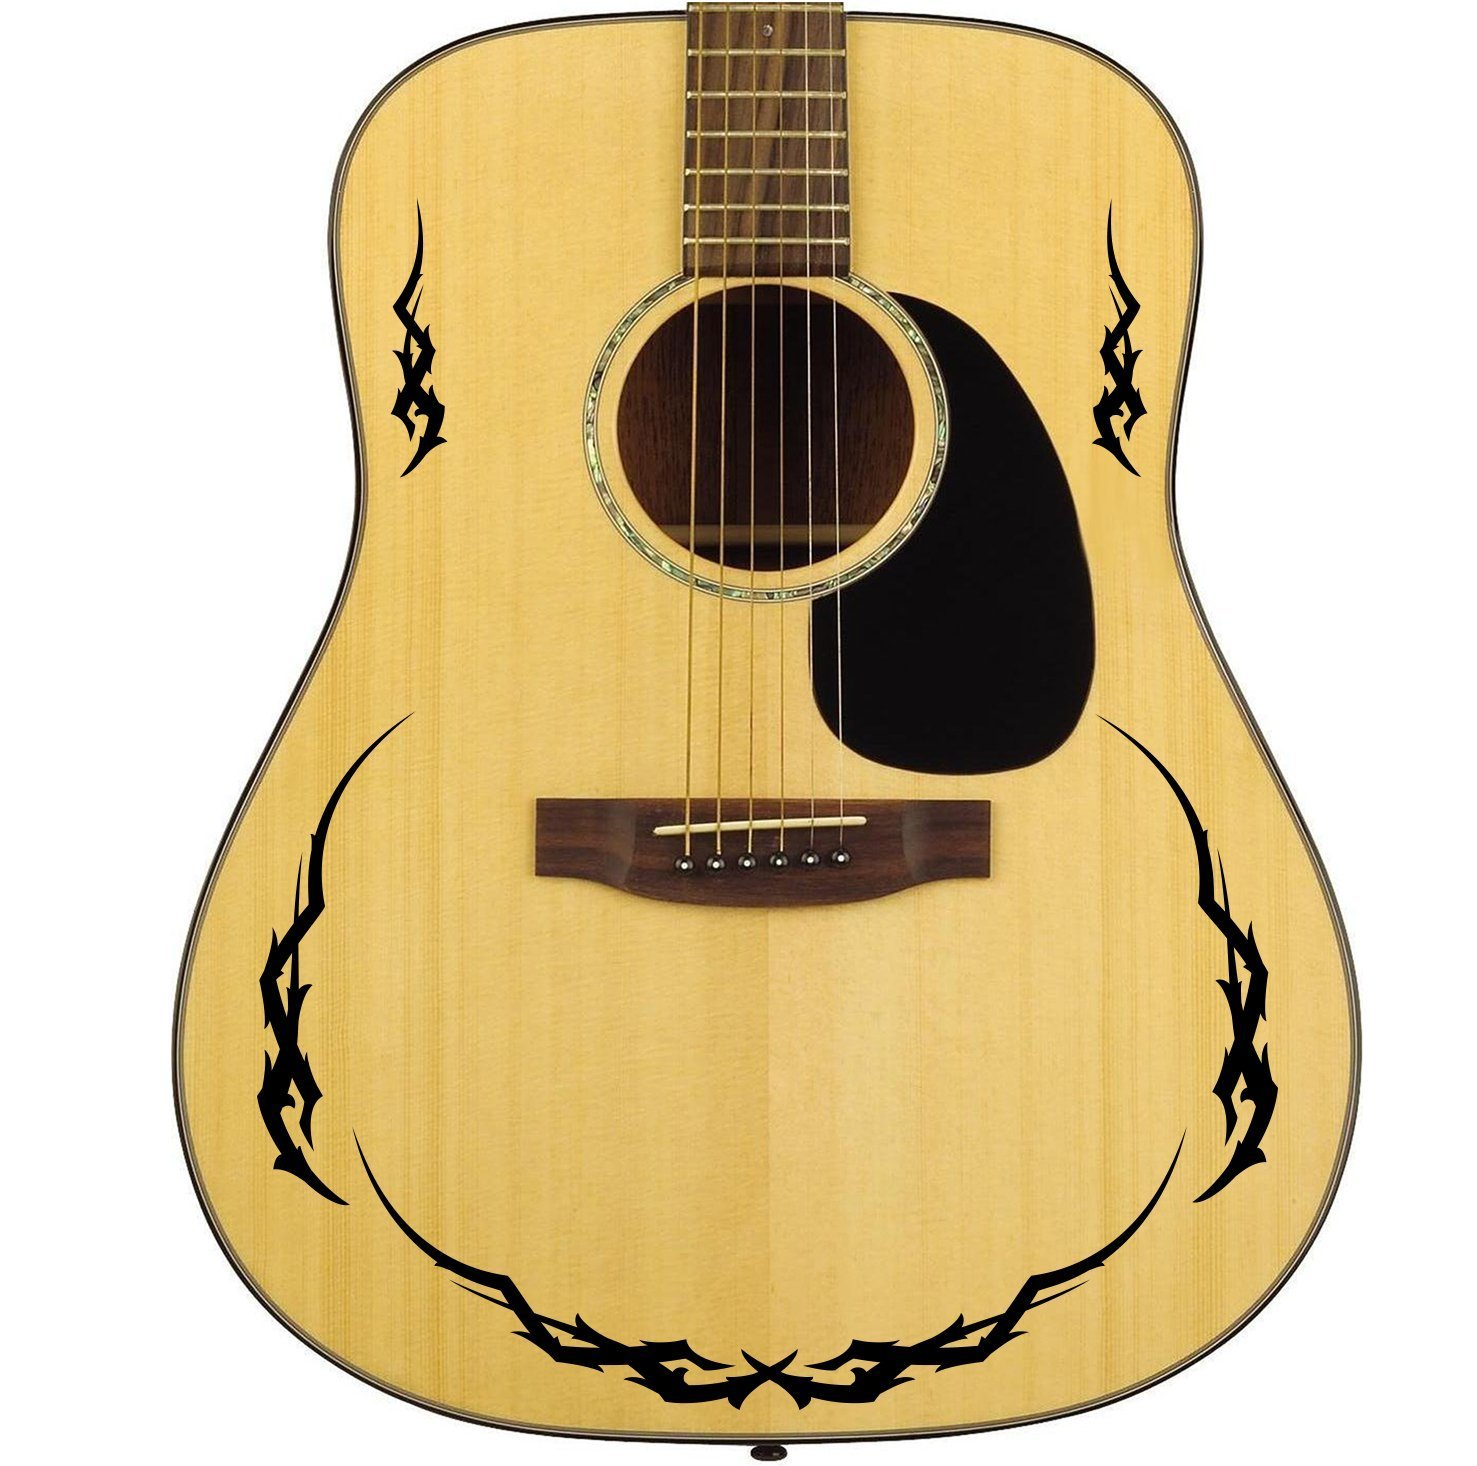 Amazon.com: Pro Acoustic Tribal Edging Guitar Decal Sticker Pack ...